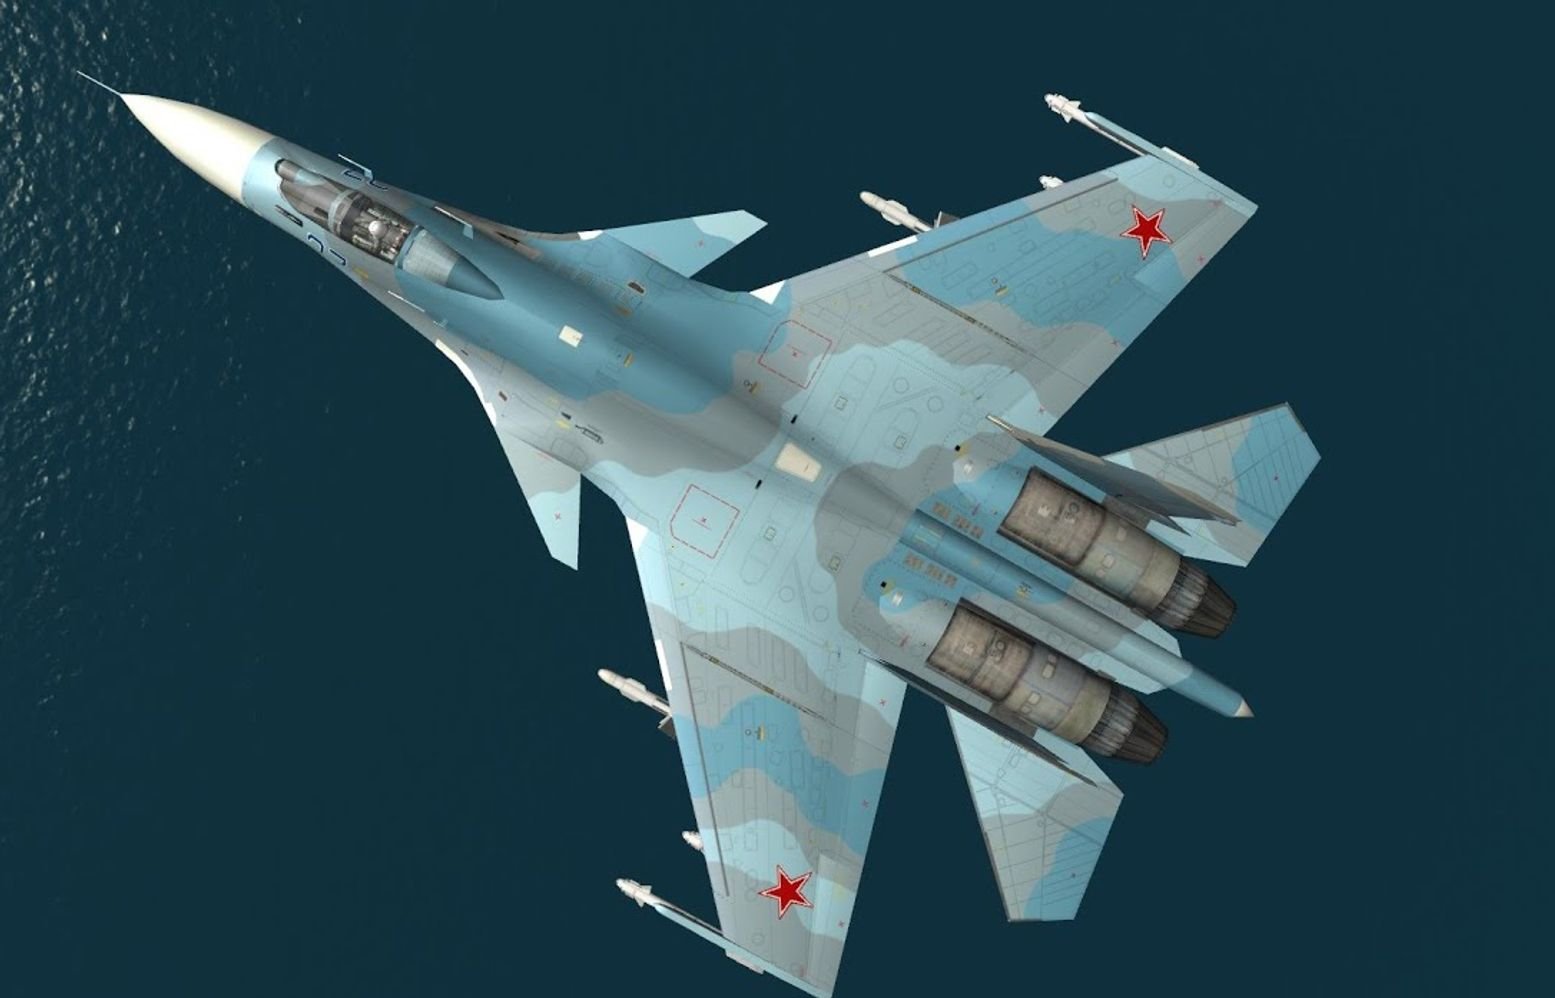 Russia to China: You Shouldn't Have Copied Our Jet Fighter Design